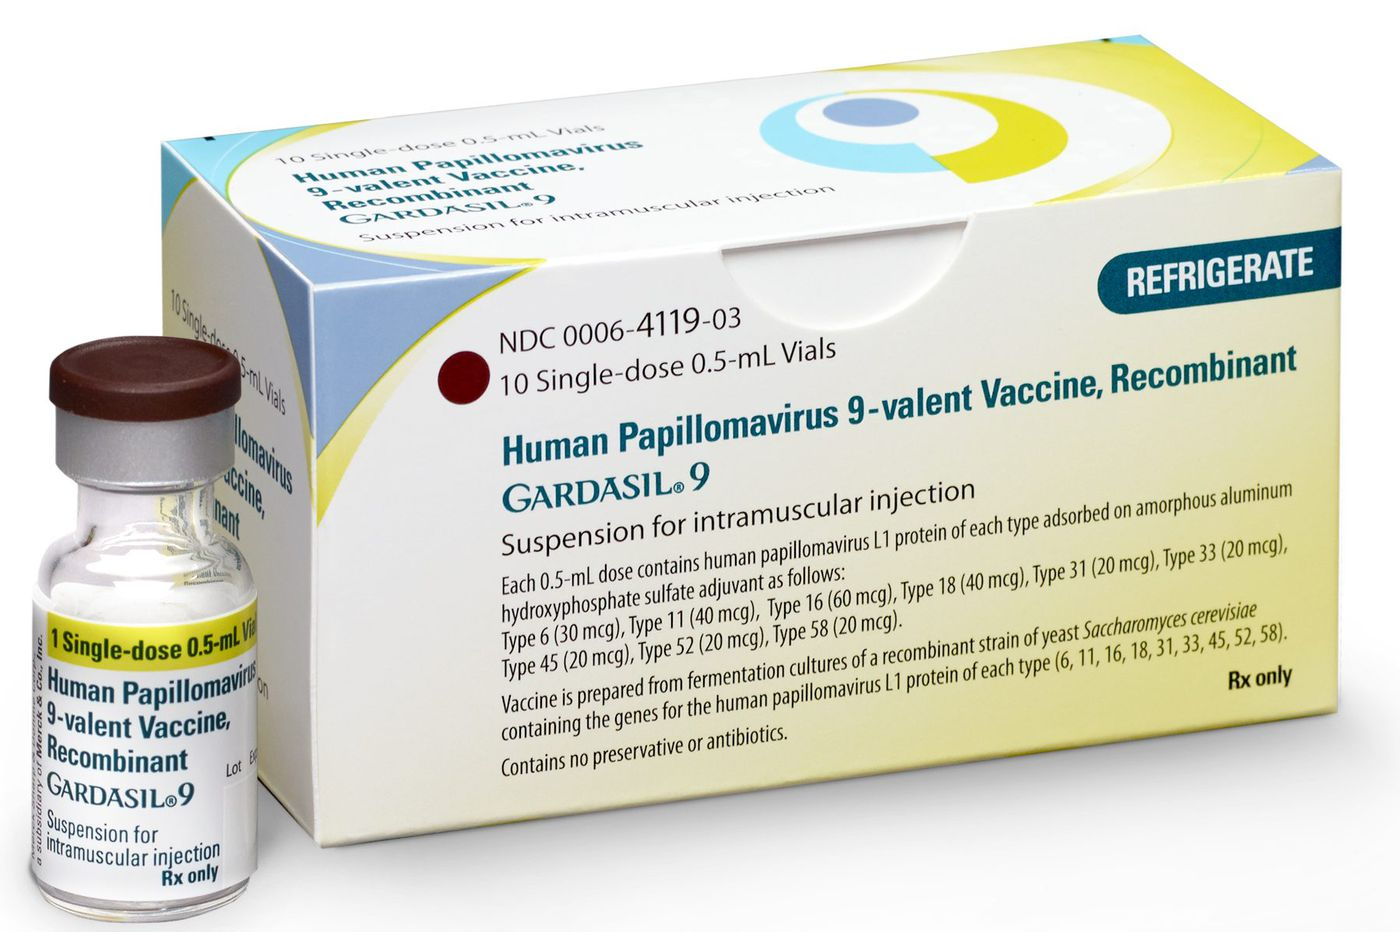 Hpv vaccine meaning in hindi.